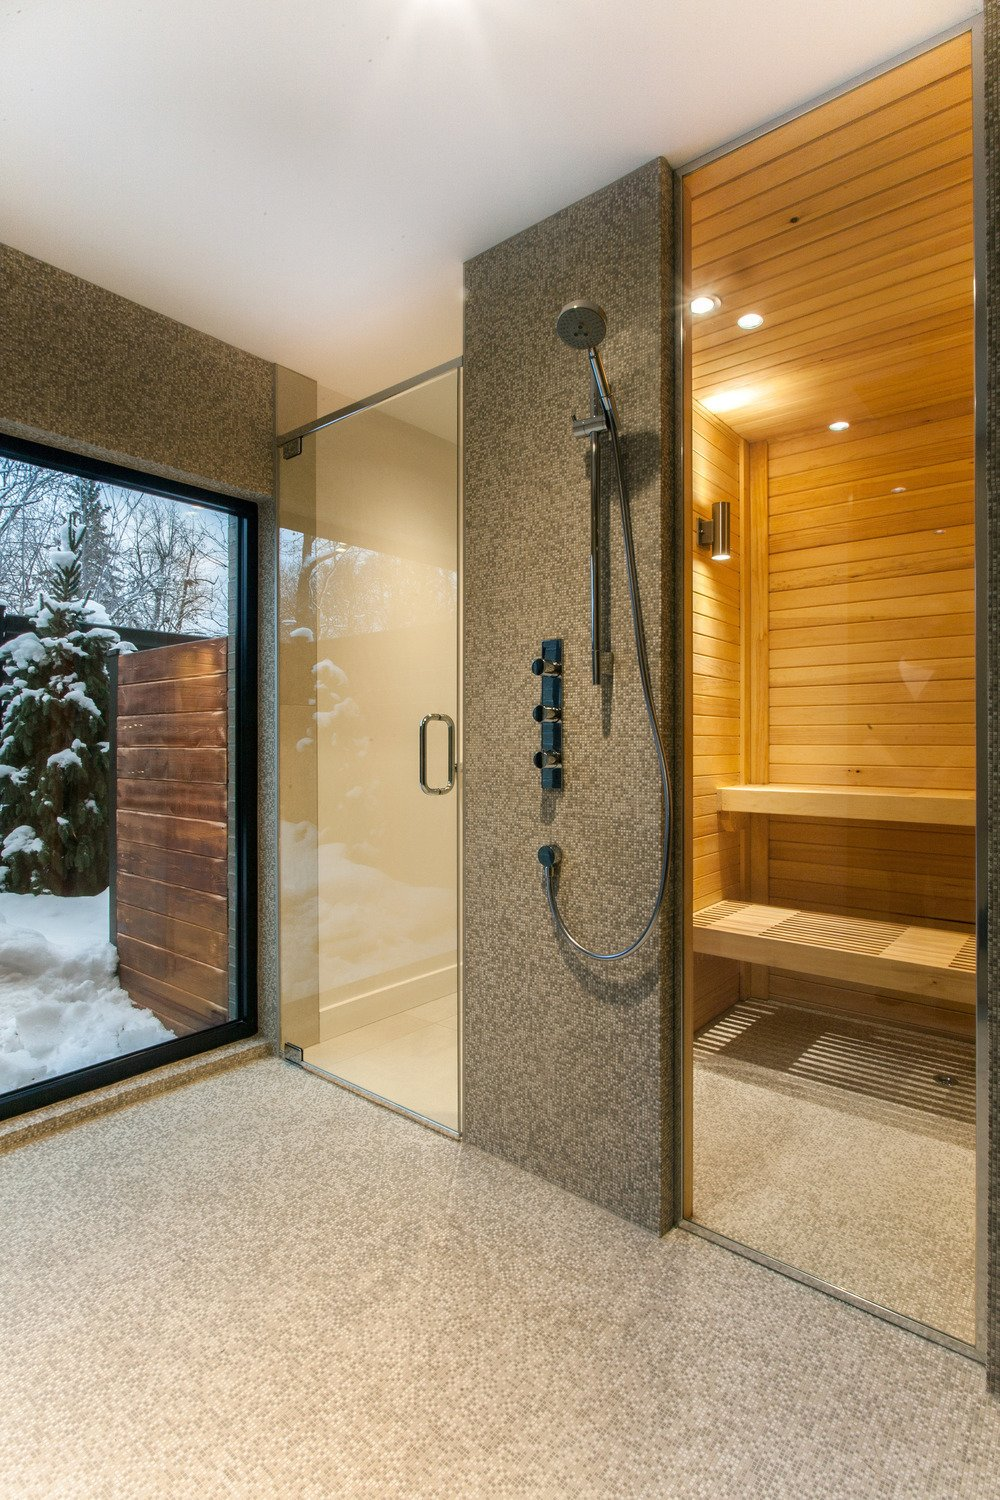 The renovated house is outfitted with a sauna.  Photo 9 of 10 in 10 Sterling Saunas in Modern Homes from Near Montreal, a 1950s House Gets a Modern Makeover